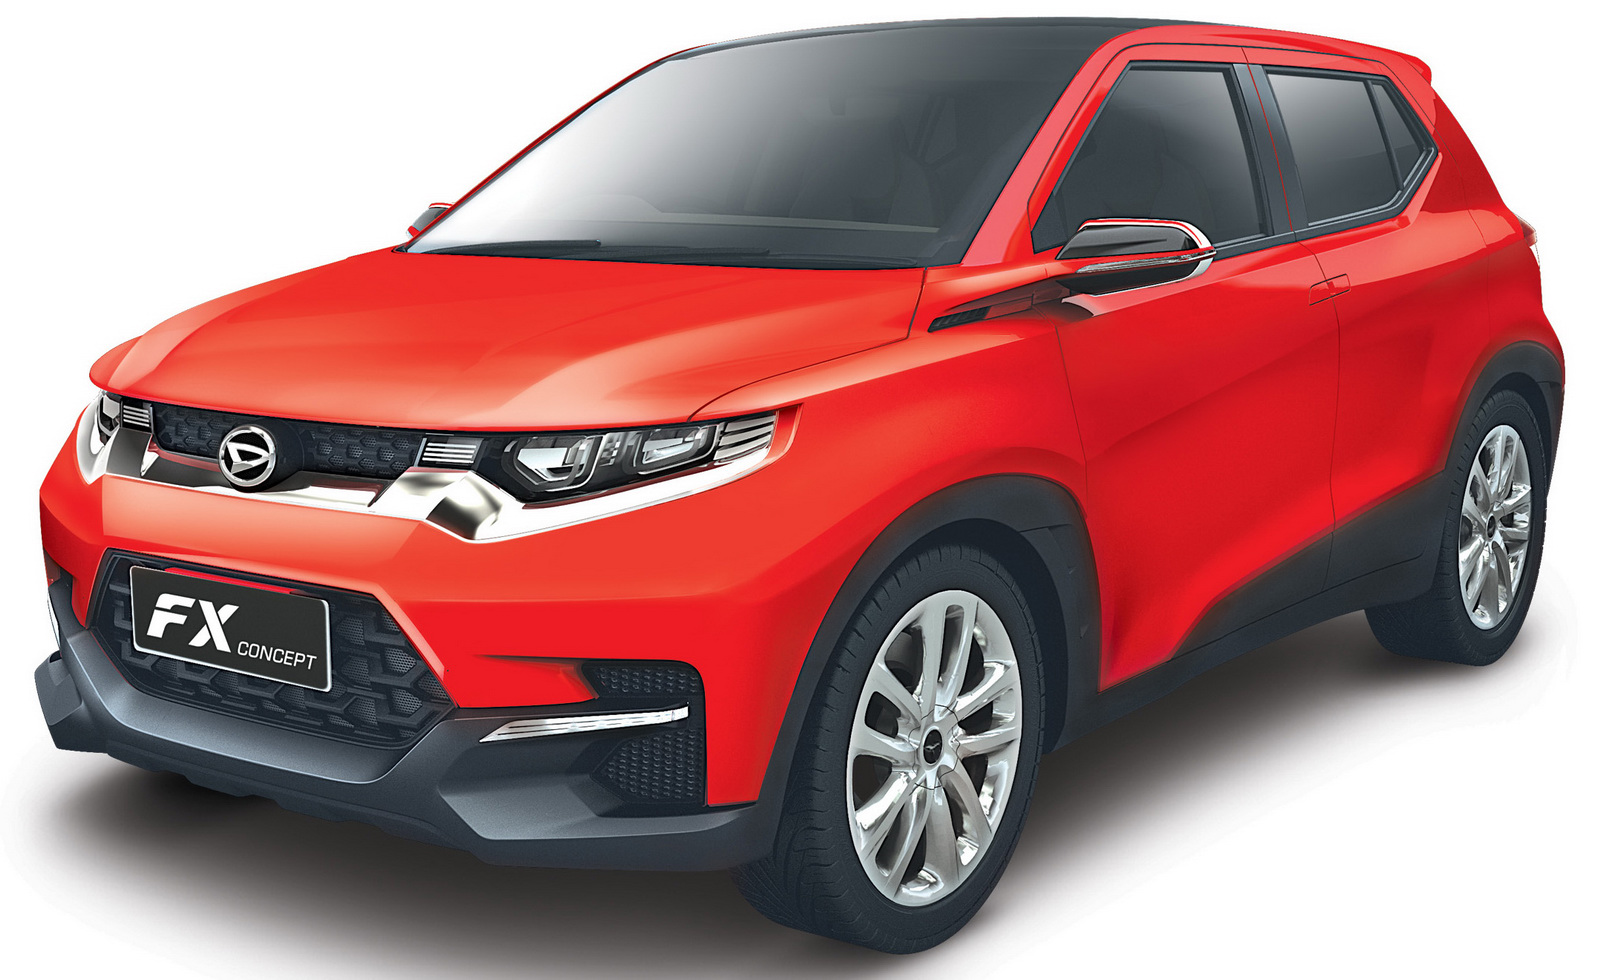 Daihatsu Badge >> Daihatsu FX SUV concept revealed for Asia: Toyota badge possible for Australia? - photos | CarAdvice